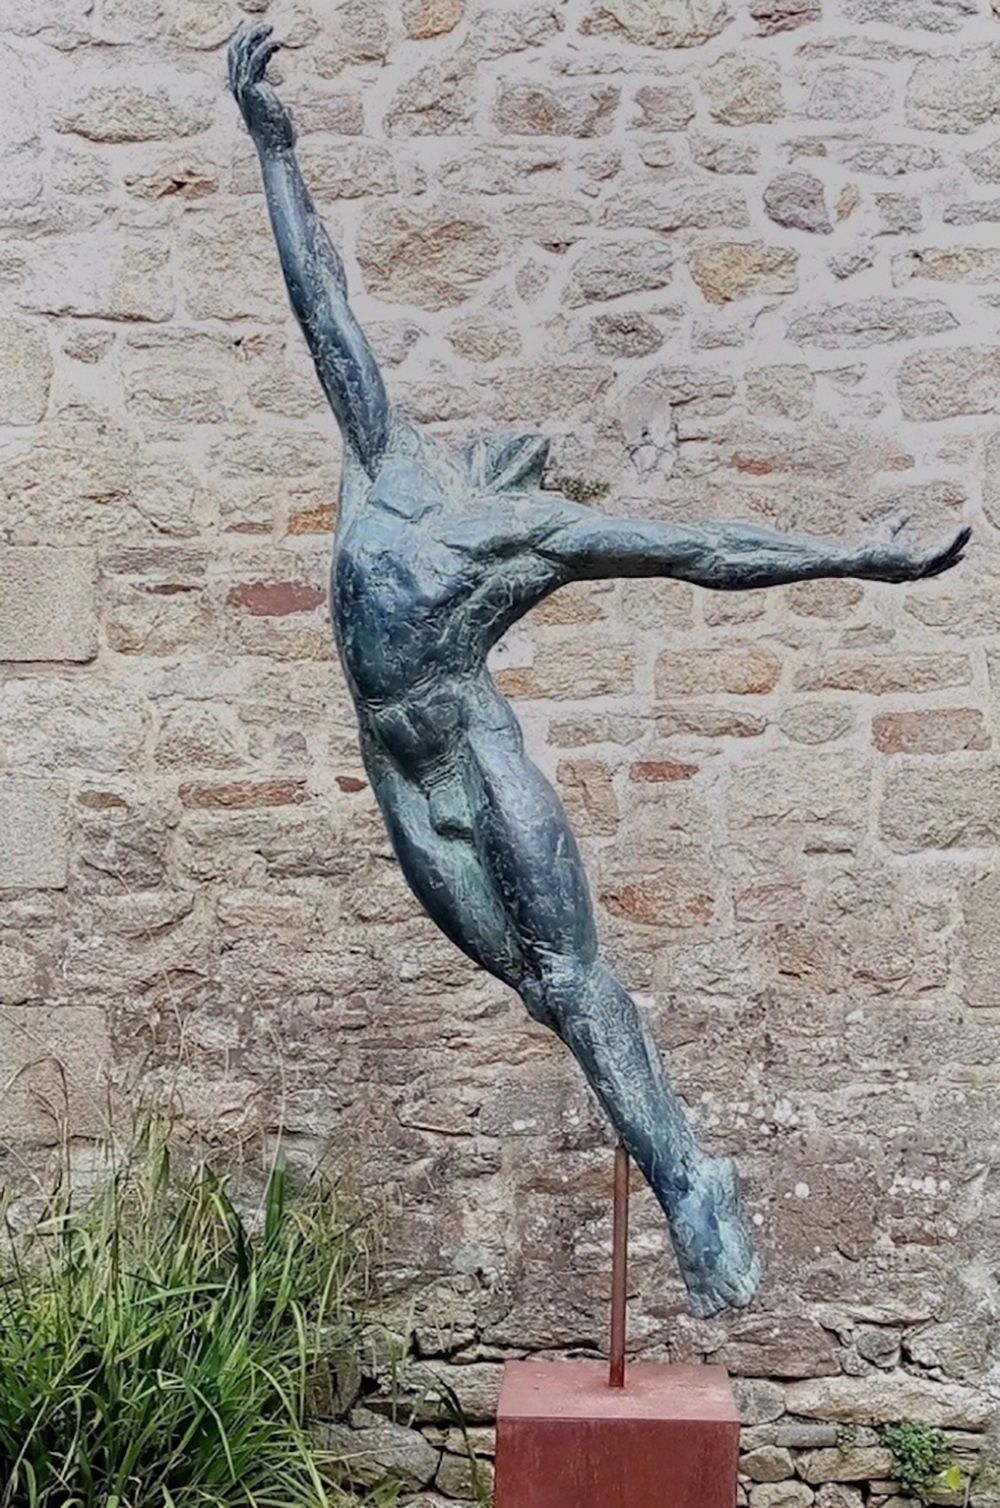 Le Grand Danseur IV,Yann Guillon,Sculpture, detail 4